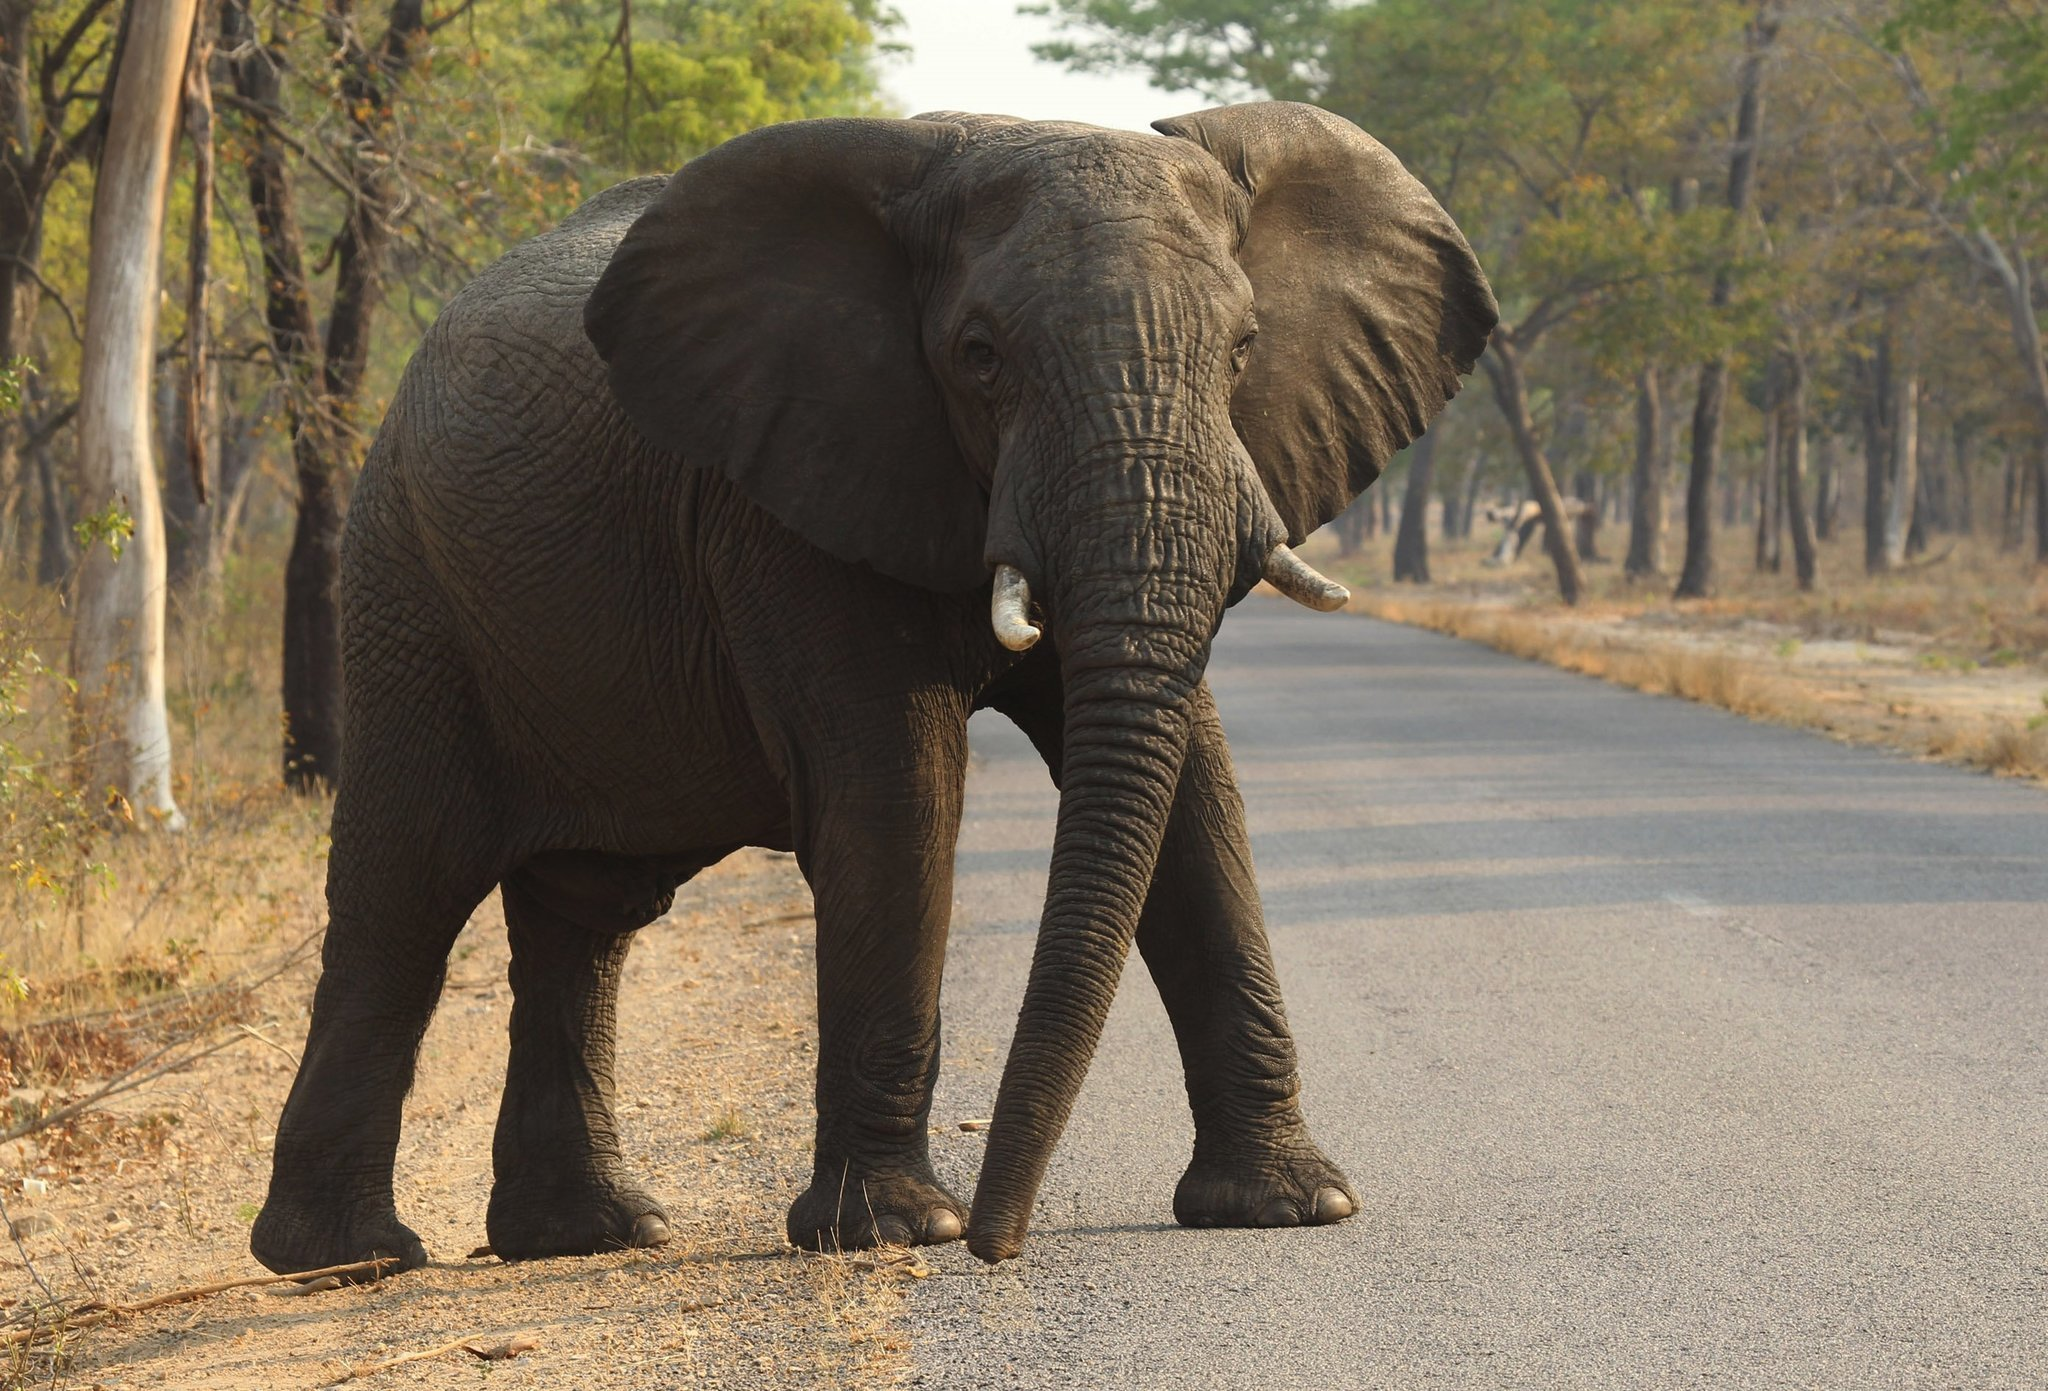 why is elephant cancer rare? answer might help treat humans - the